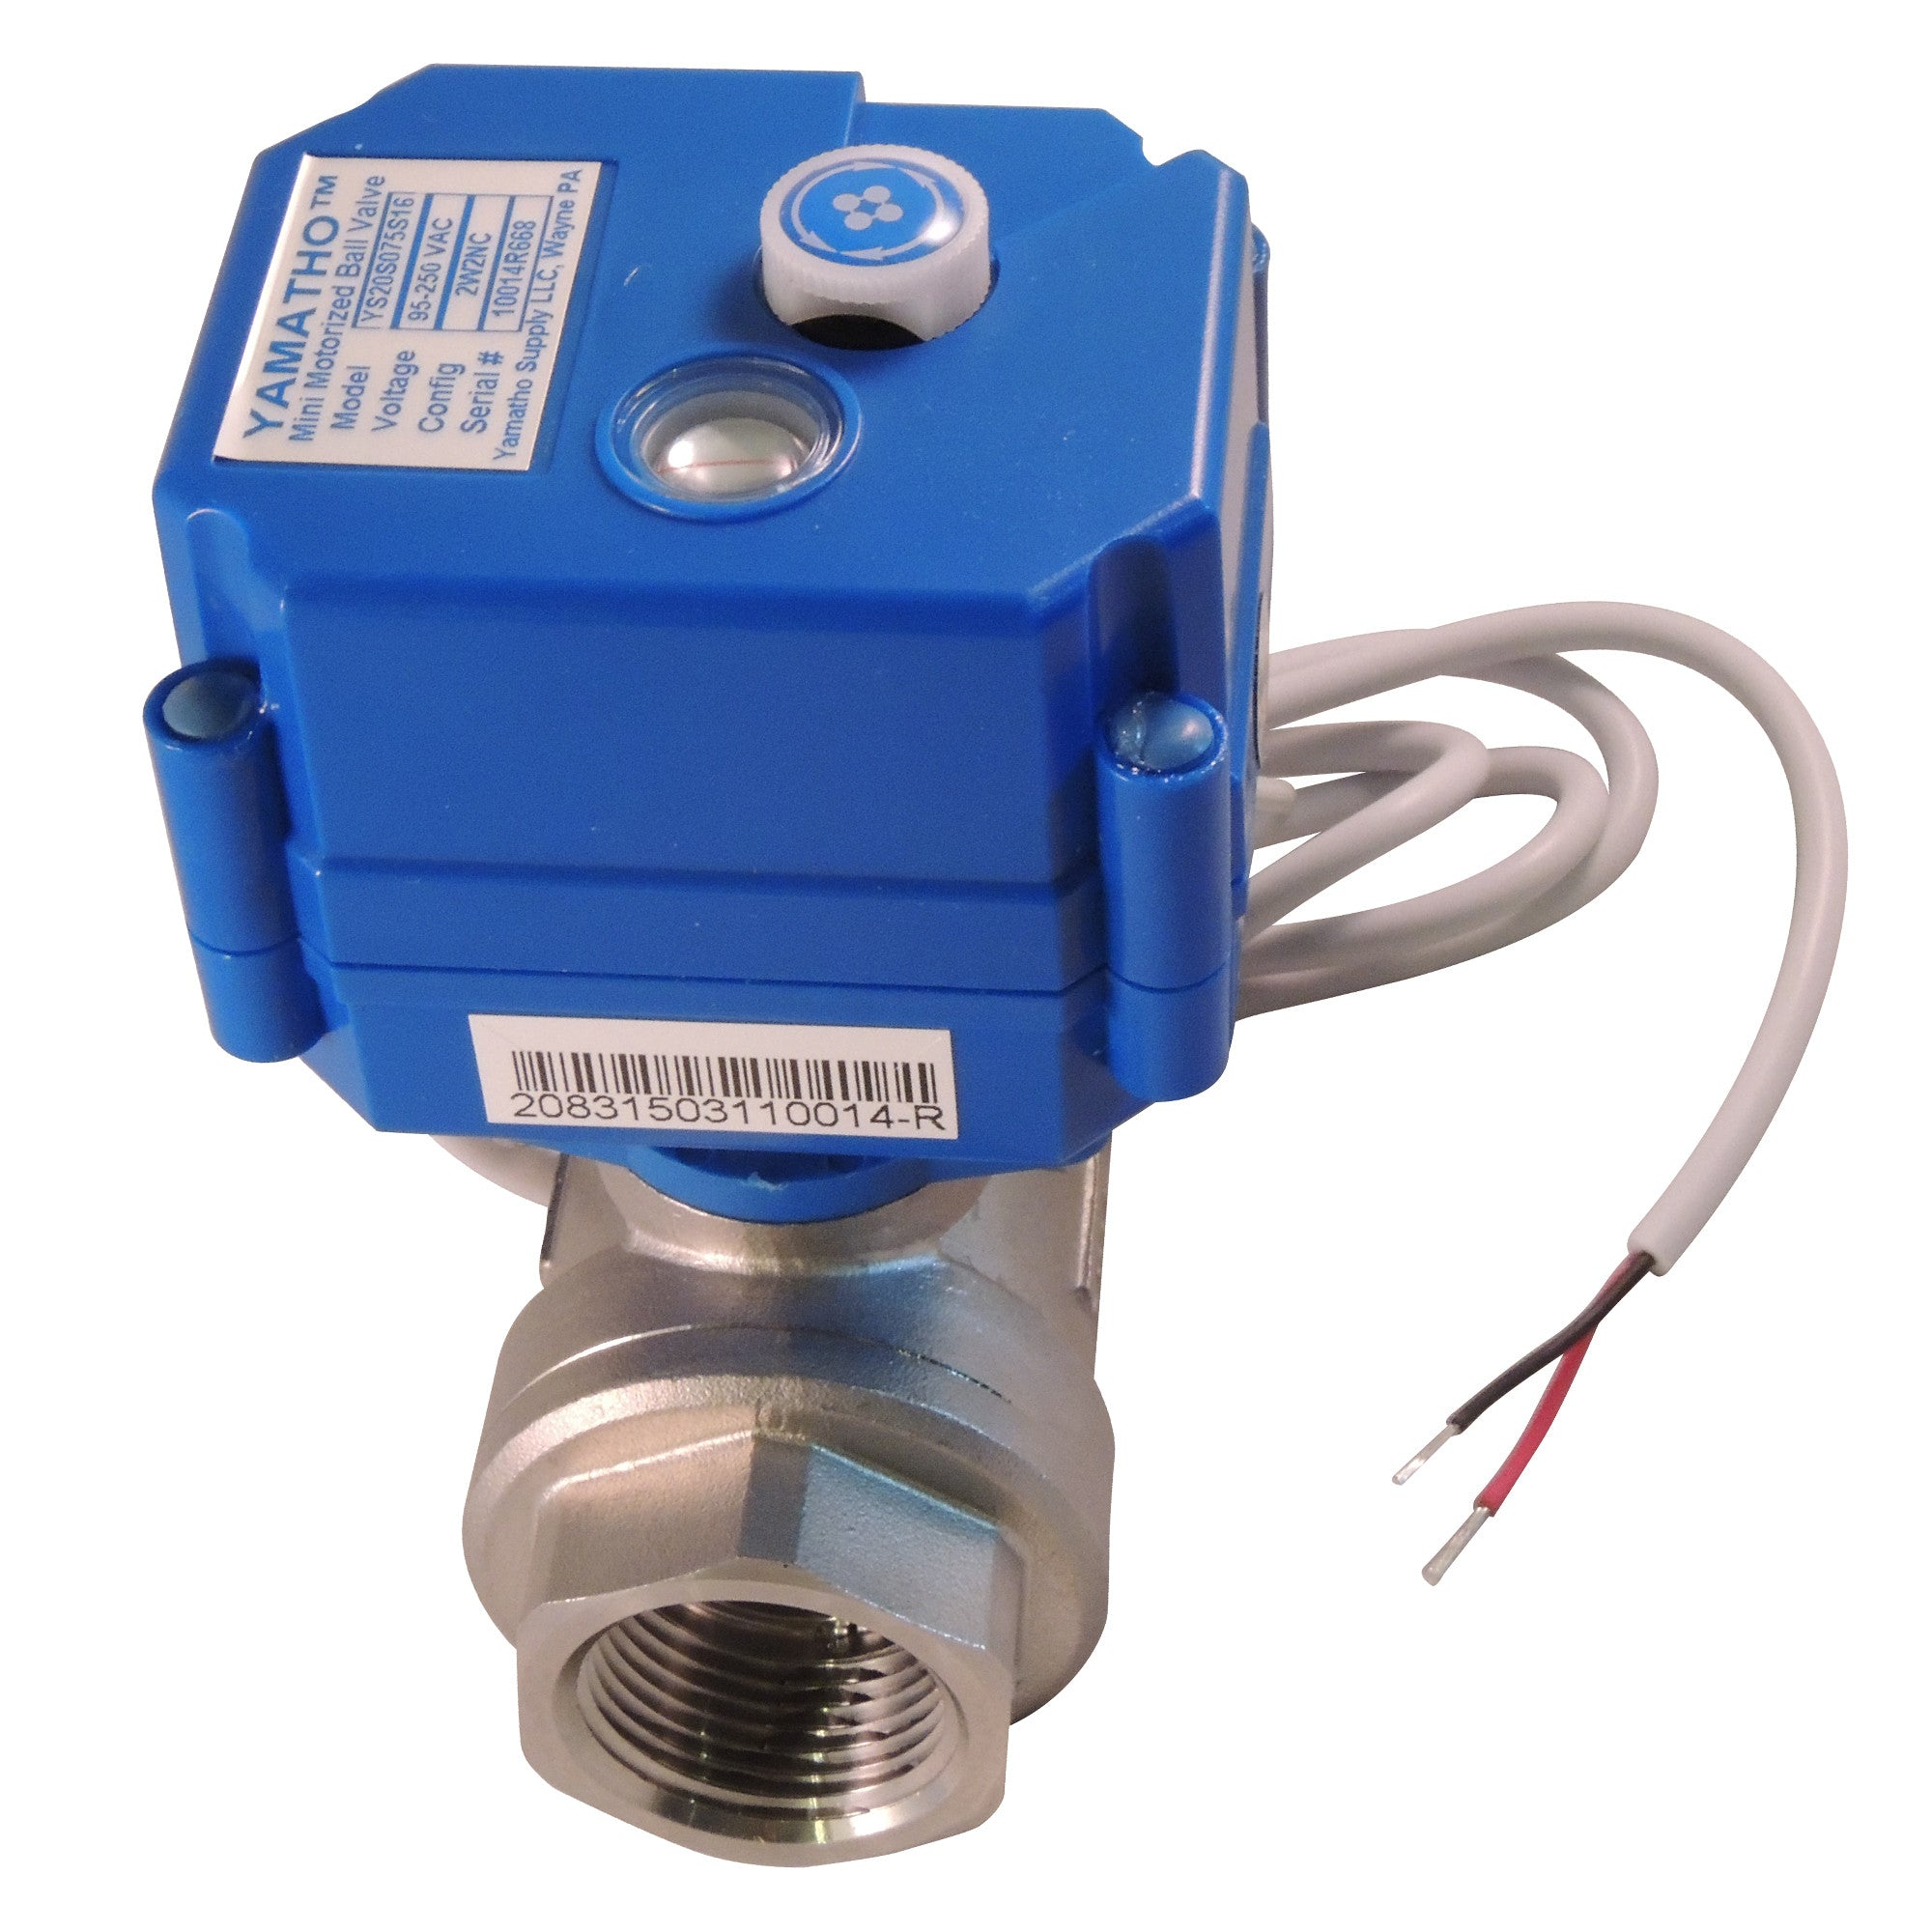 Front Page 2 Wire Actuator Wiring Electric Ball Valve Ys20skt2s Wires W Position Elec Ind Normally Closed 24 Vdc Yamavalve